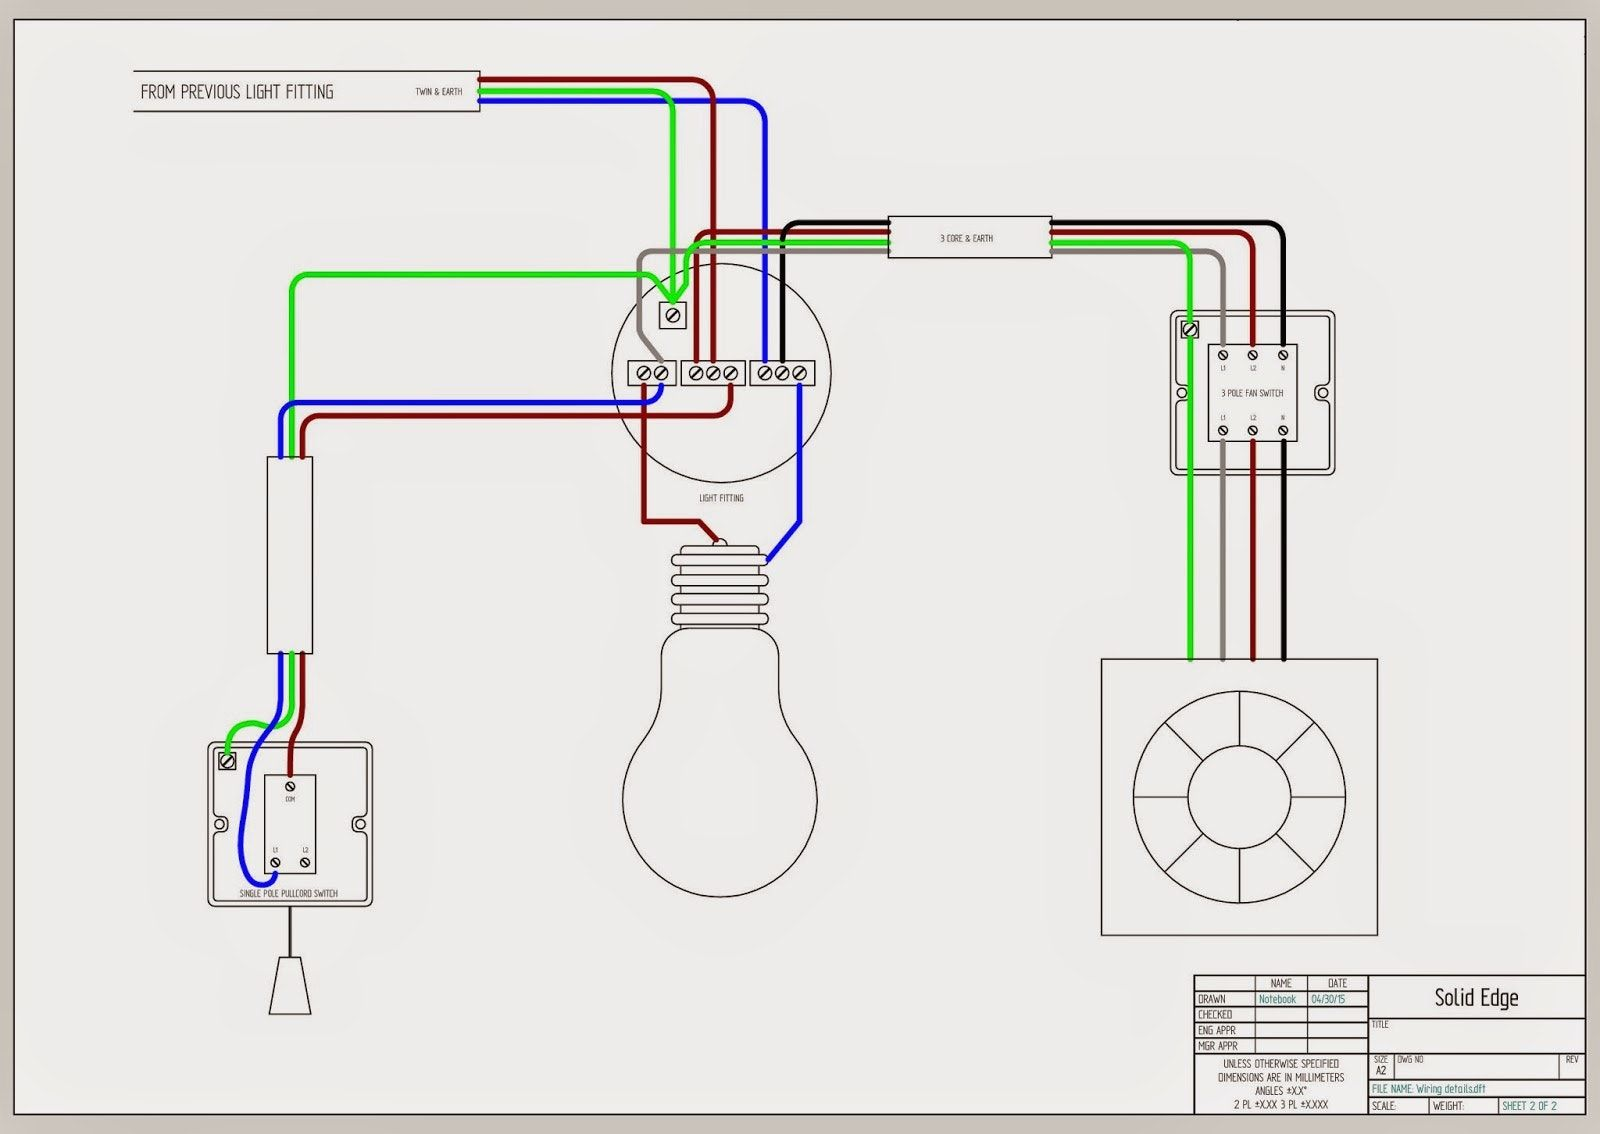 lx whirlpool bath pump wiring diagram image result for fan isolator switch wiring diagram ...